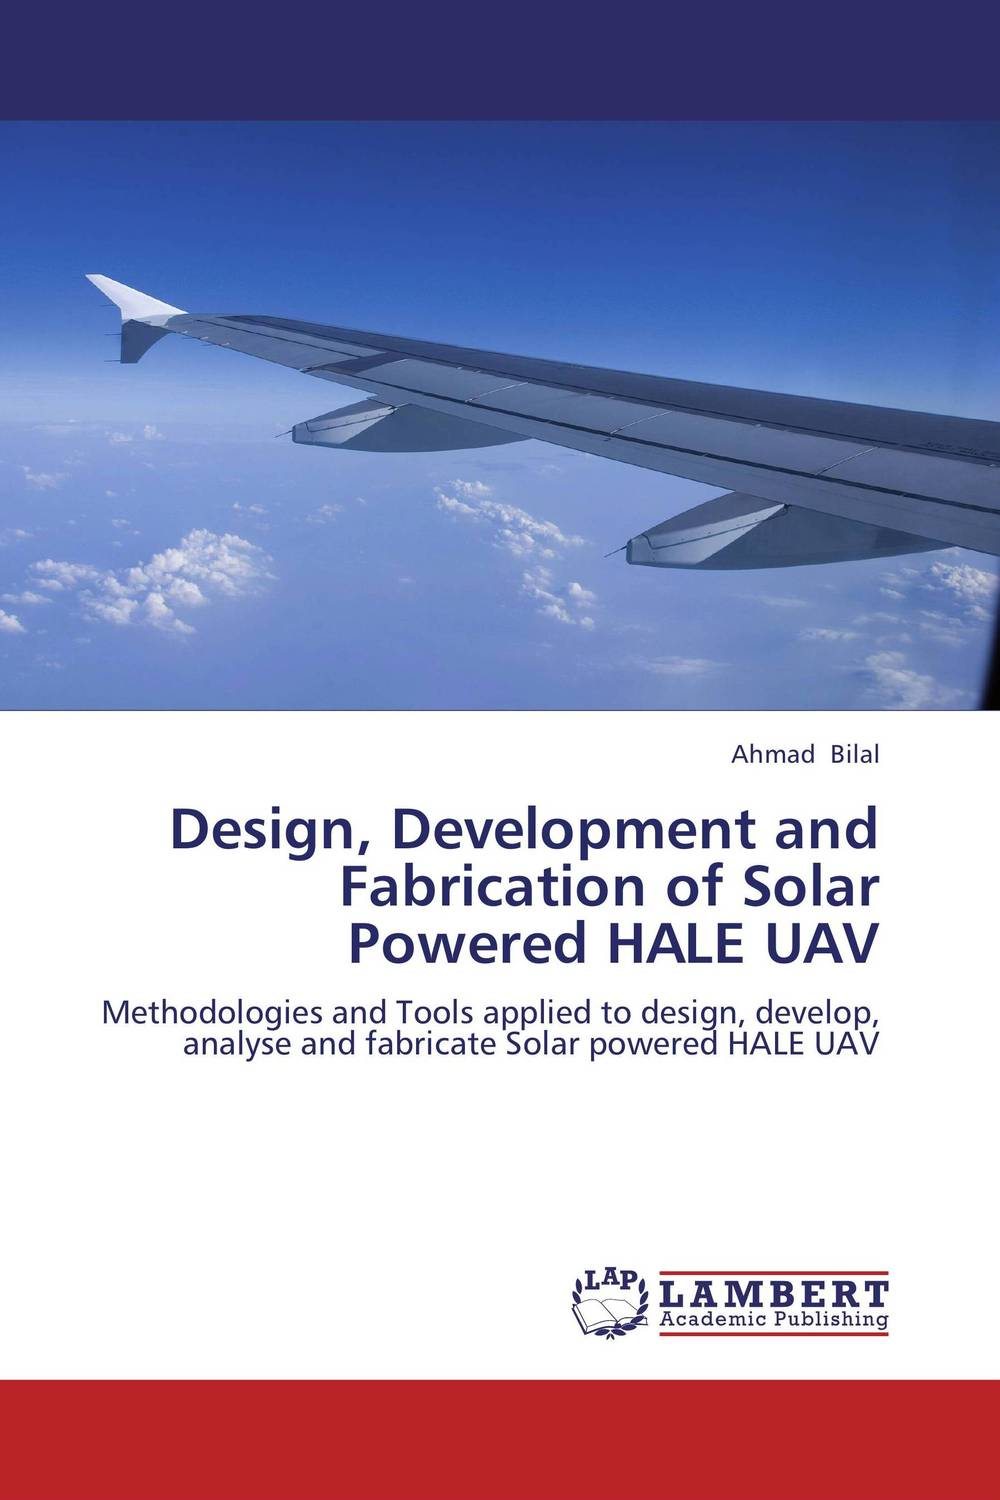 Design, Development and Fabrication of Solar Powered HALE UAV md aminul islam design and analysis of a double fed solar ips